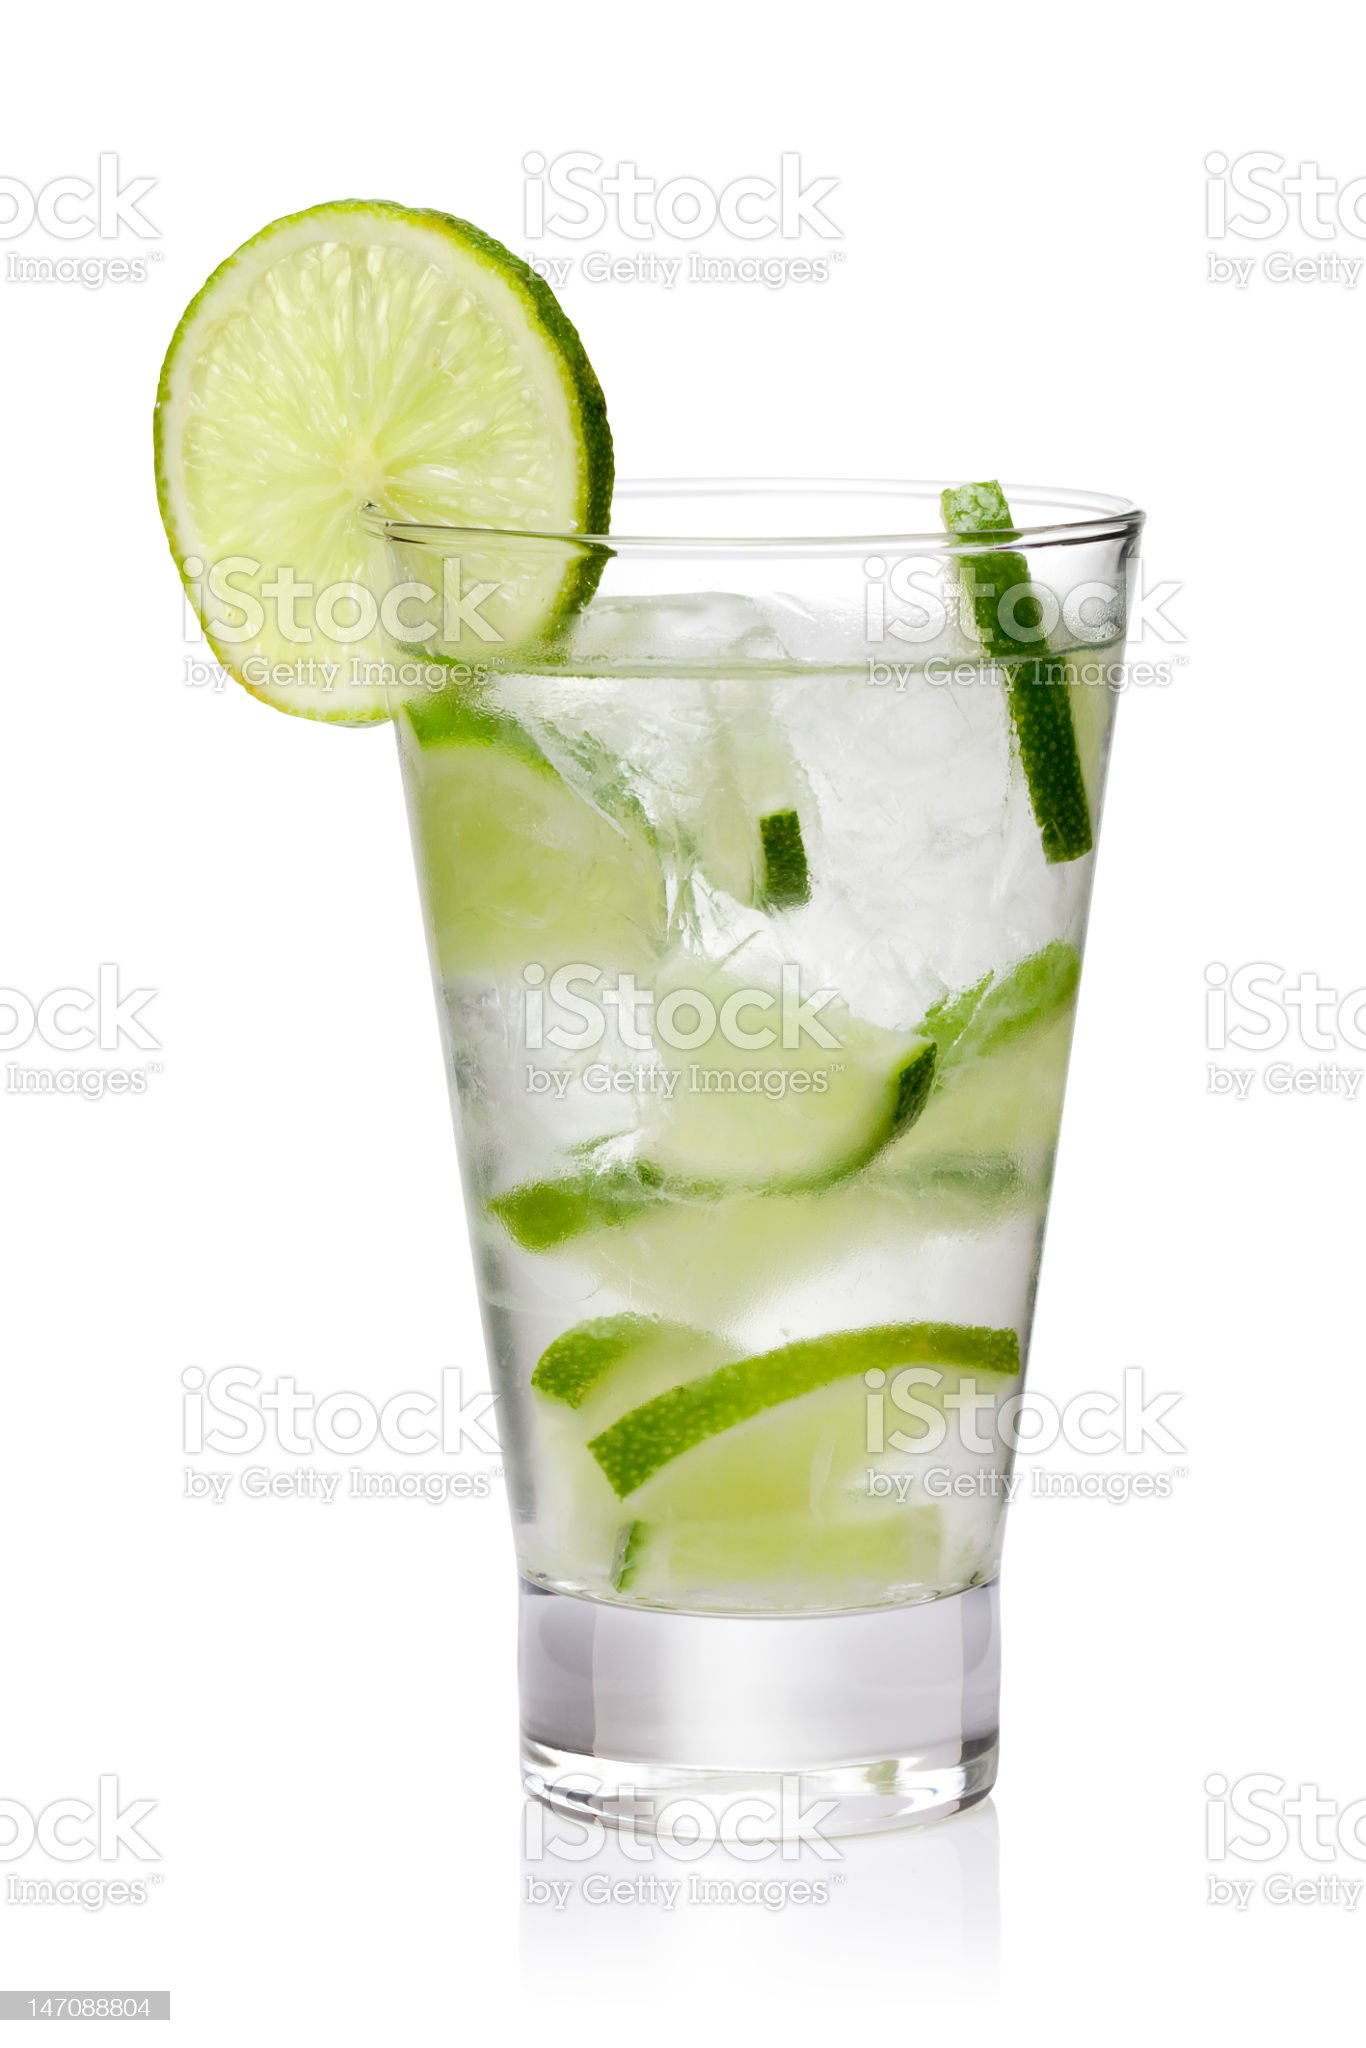 Ice cold lemonade with fresh lime slices isolated on white royalty-free stock photo